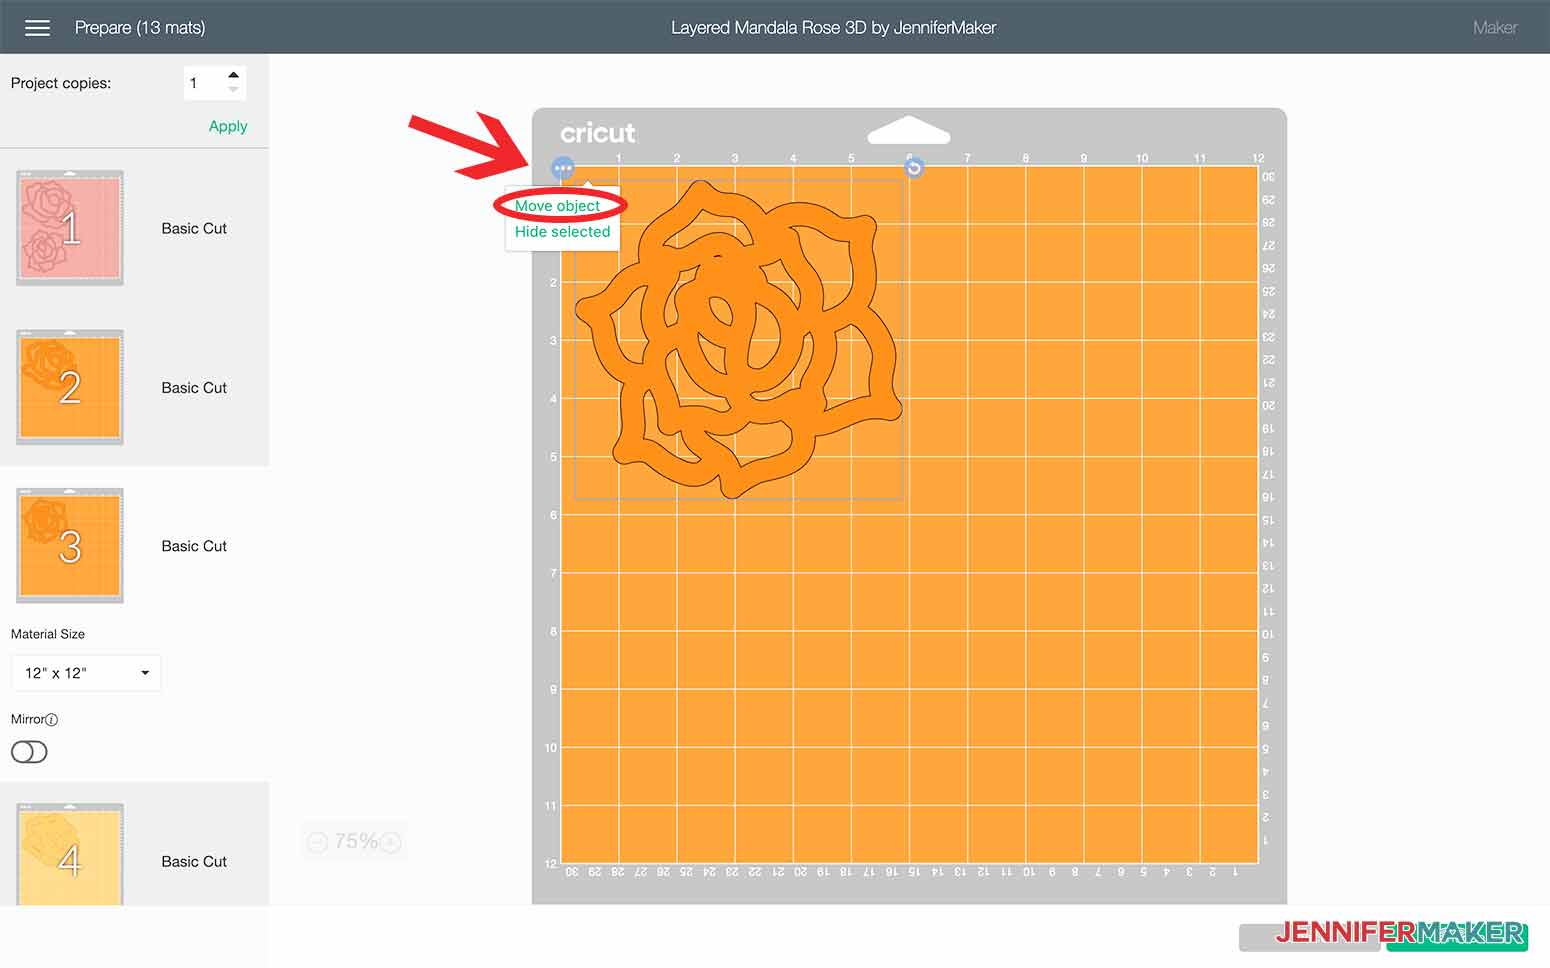 Select Move Object for the design to change mats in Design Space for my Layered Mandala